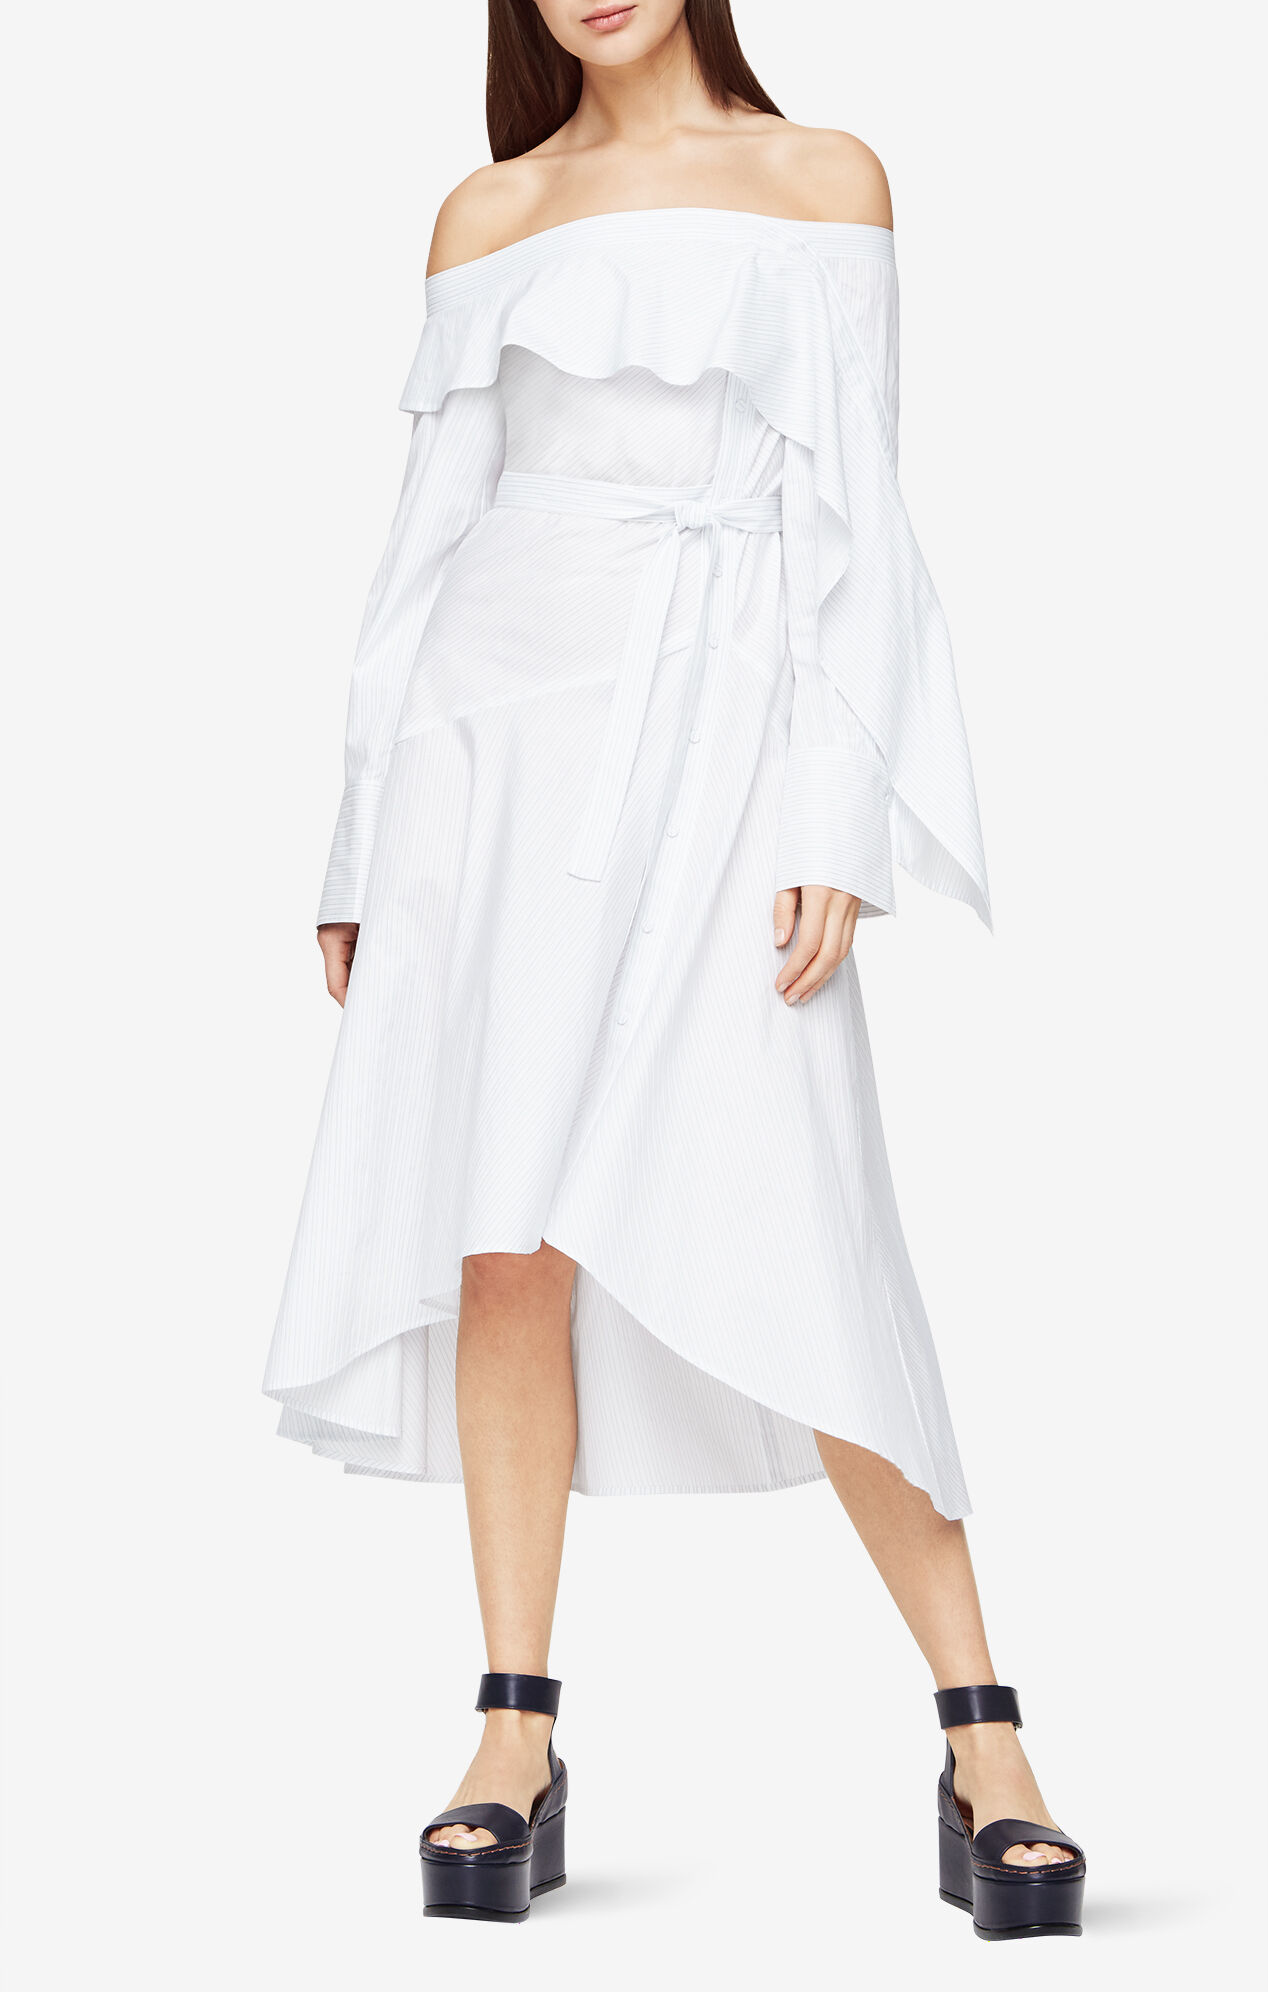 white high low dresses for juniors